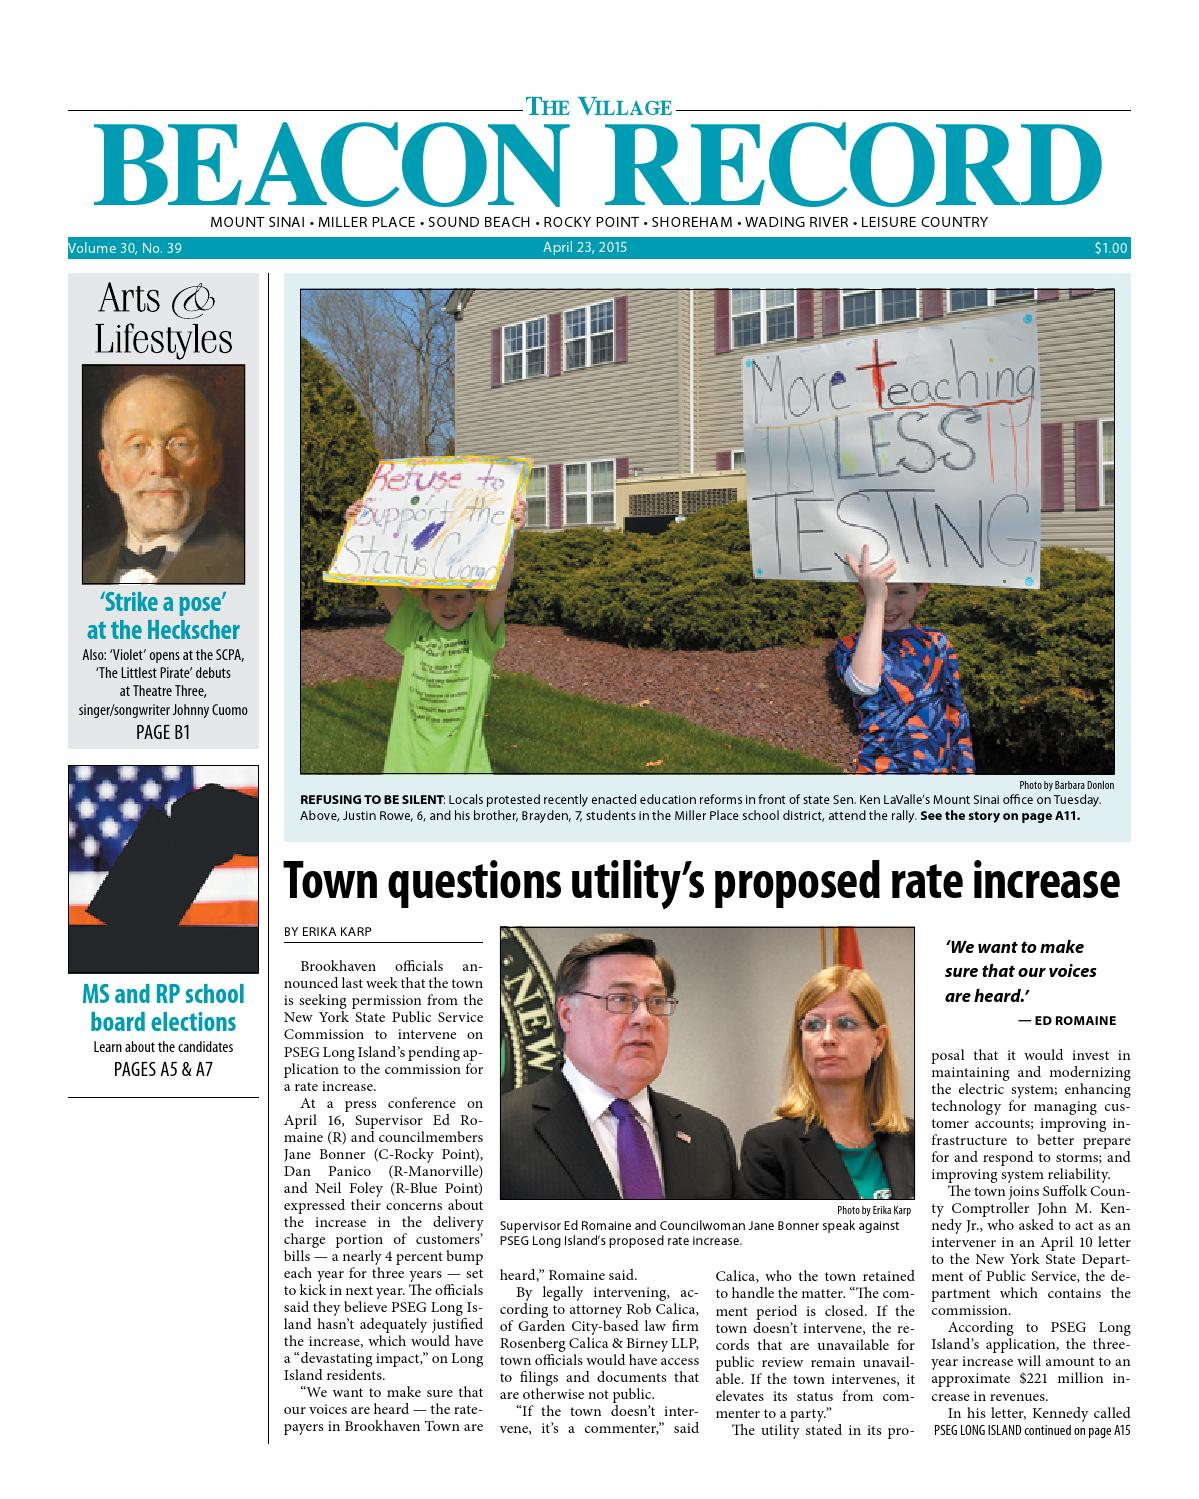 The village beacon record april 23 2015 by tbr news media issuu fandeluxe Choice Image